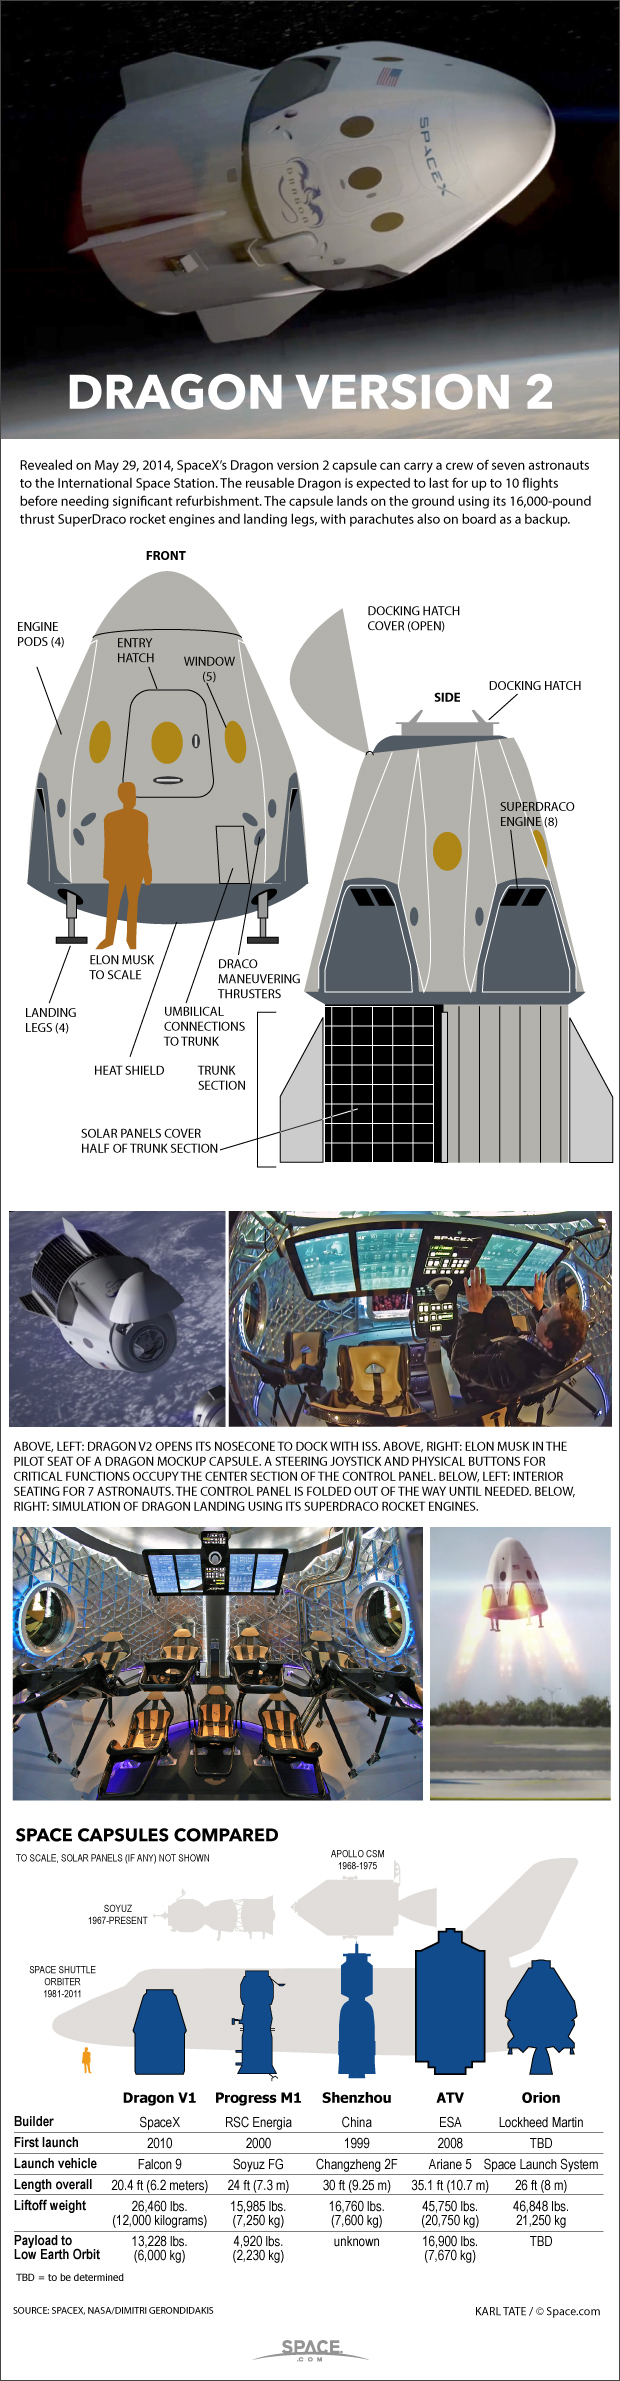 Details of SpaceX's Dragon V2 manned spacecraft.